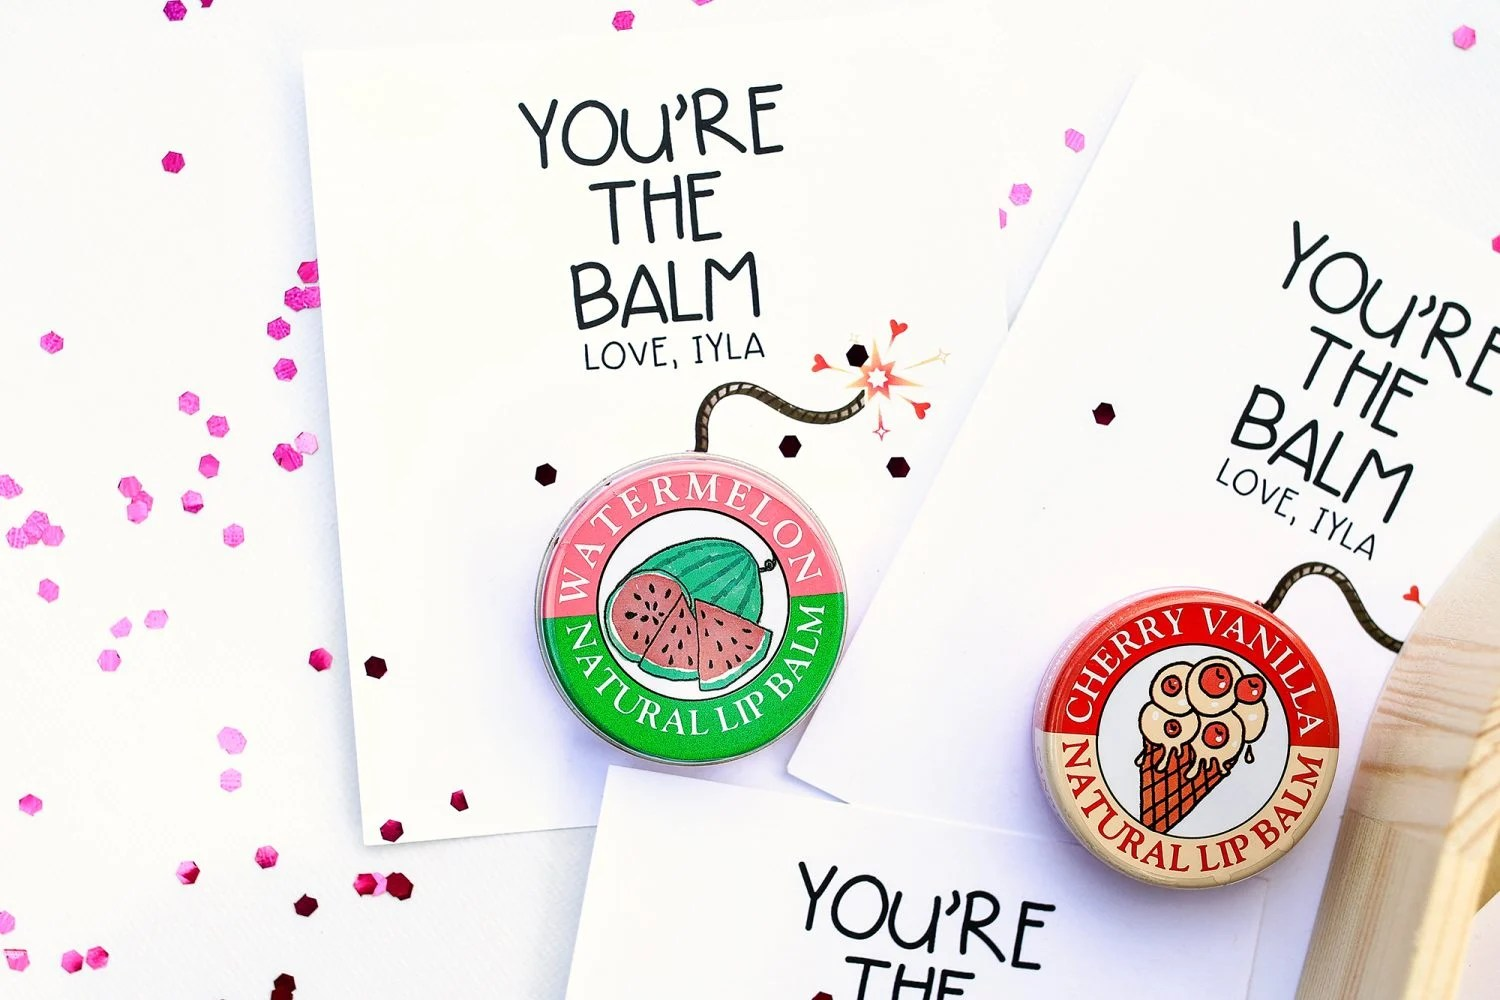 photograph relating to You're the Balm Free Printable identified as Youre the Balm Valentine for Young children Additionally Totally free Printable - The